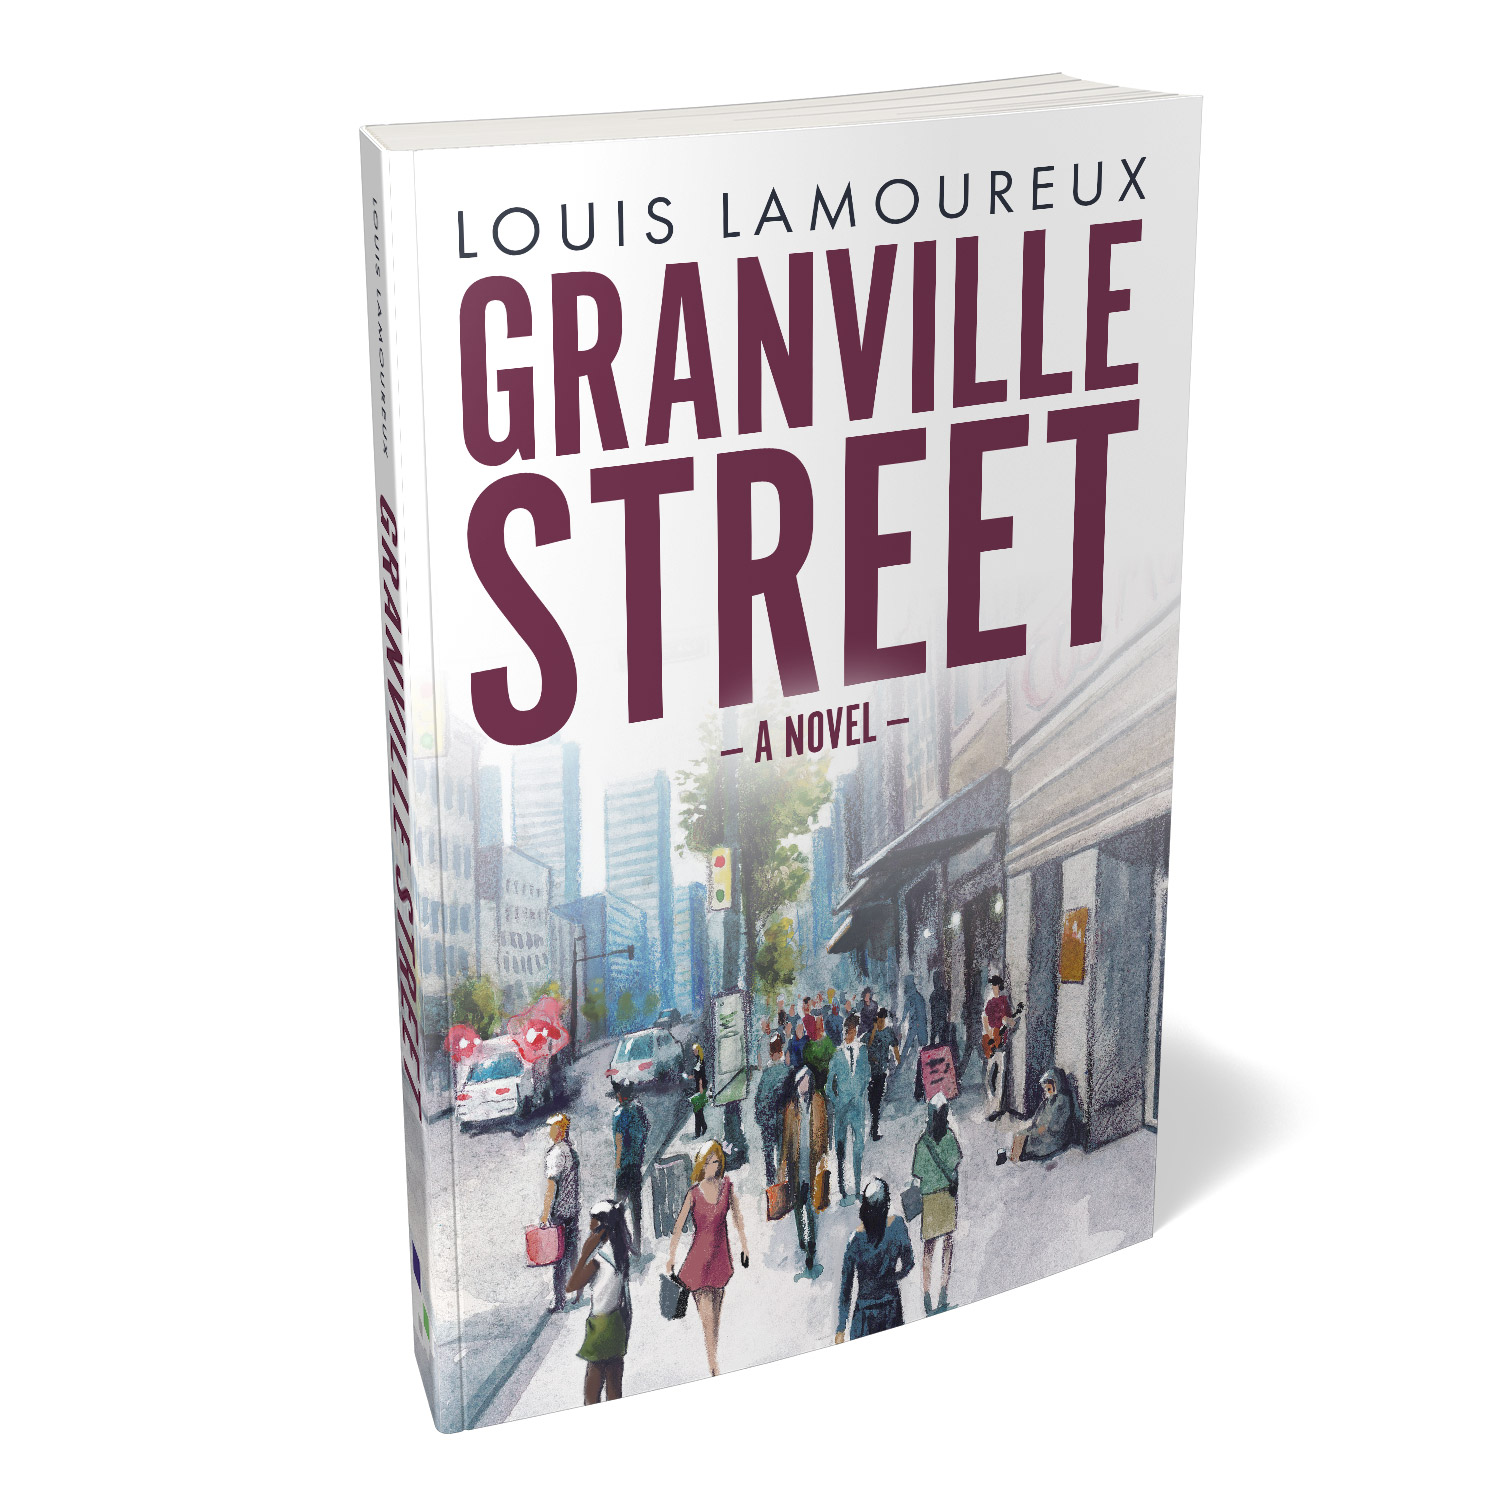 'Granville Street' is a heartbreaking novel of opioid addiction and loss. The author is Louis Lamoureux. The cover design and interior manuscript formatting are by Mark Thomas. Learn what Mark could do for your book by visiting coverness.com.